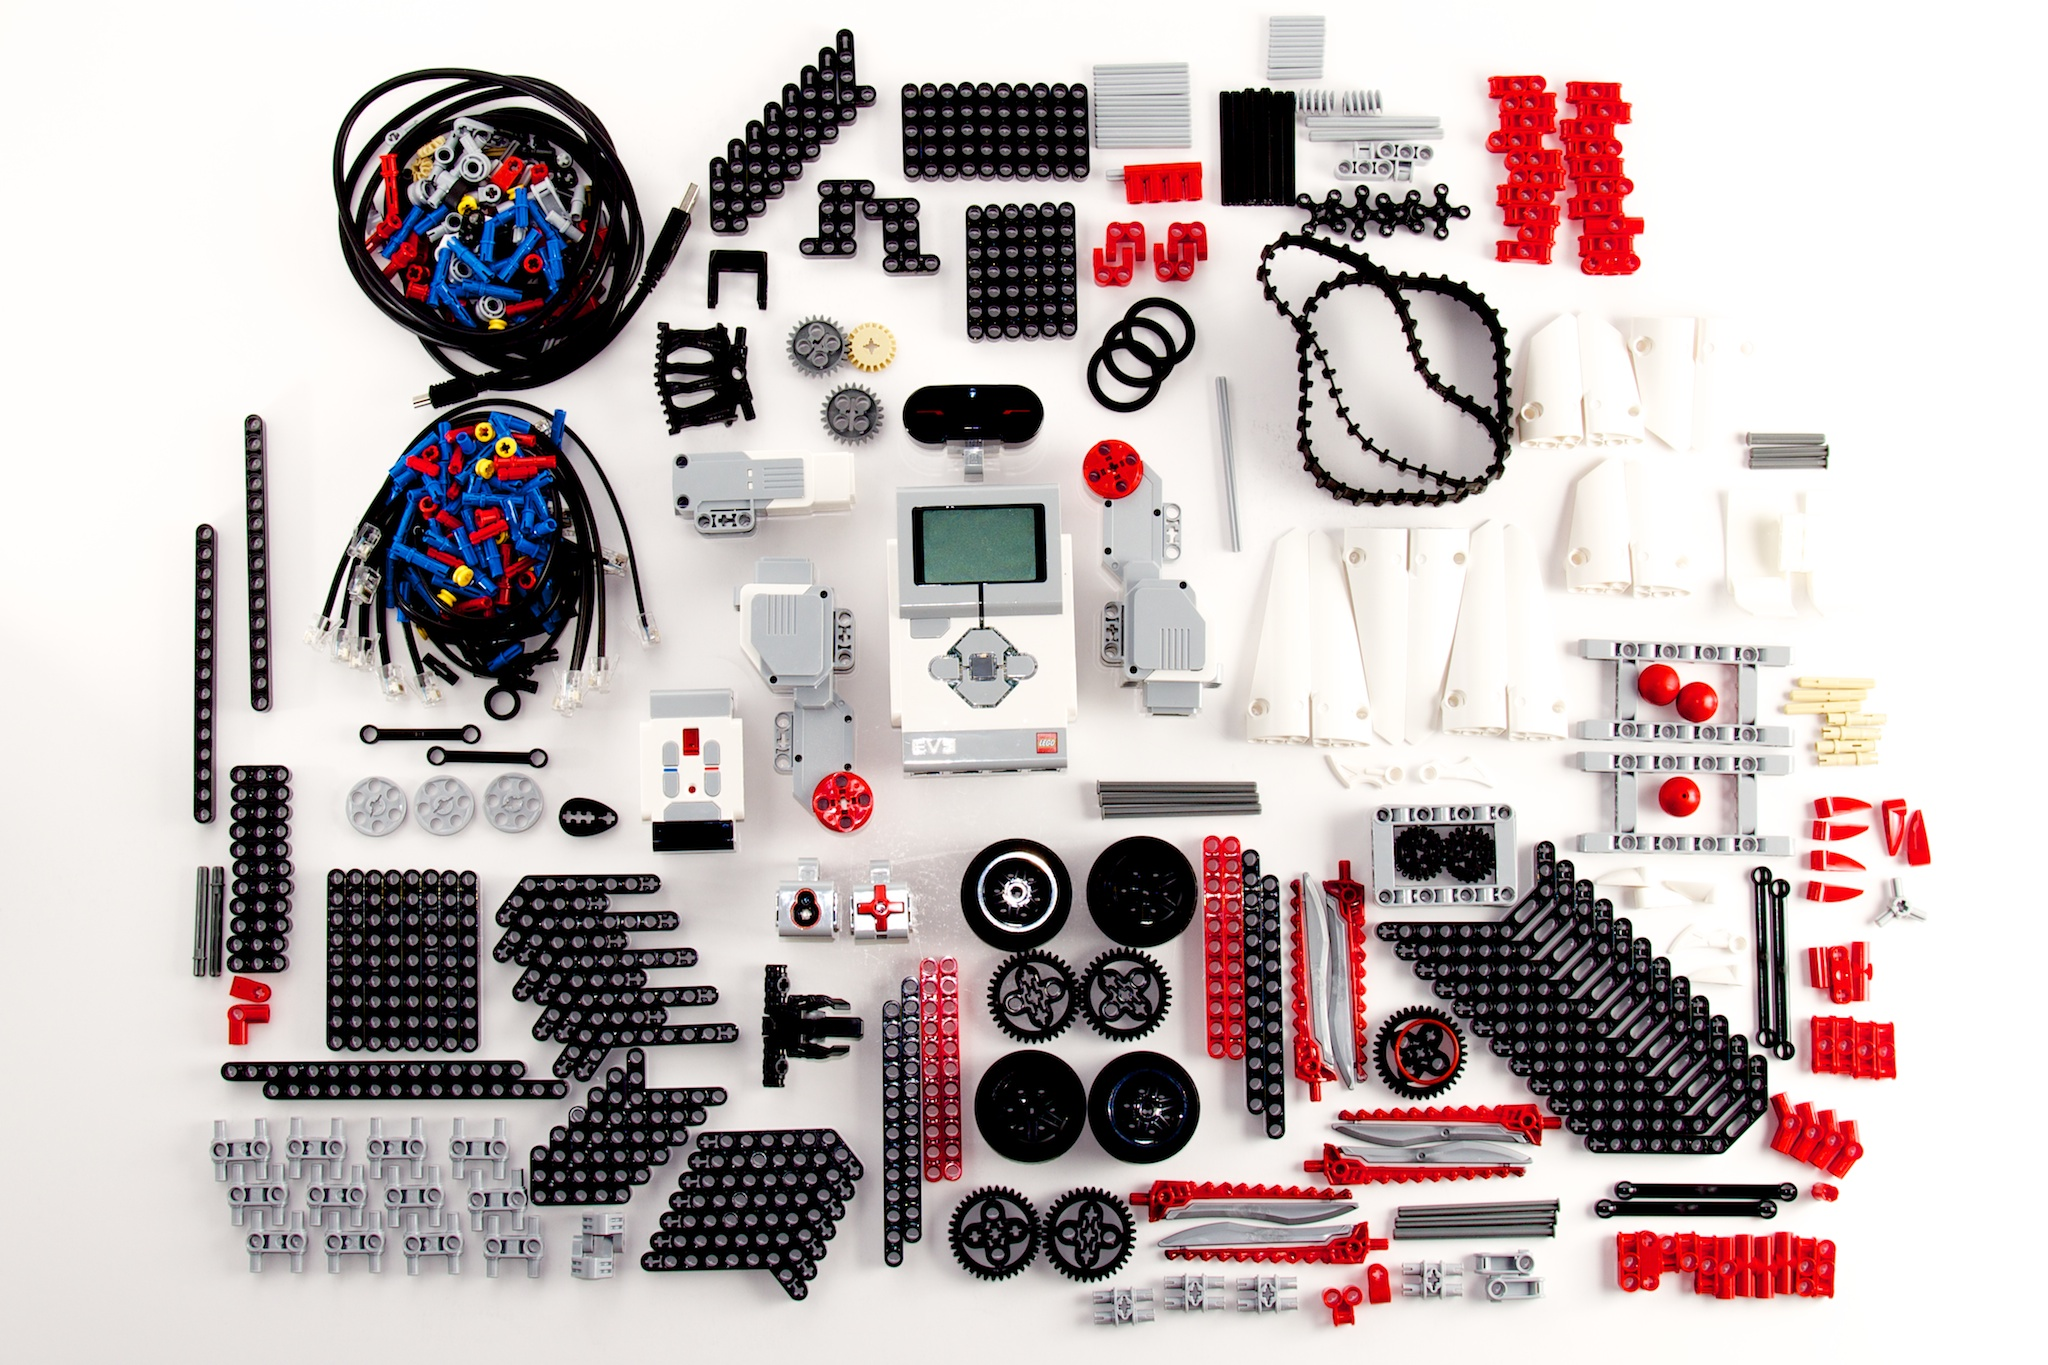 lego mindstorms ev3 lego mindstorms ev 3 einebinsenweisheit. Black Bedroom Furniture Sets. Home Design Ideas